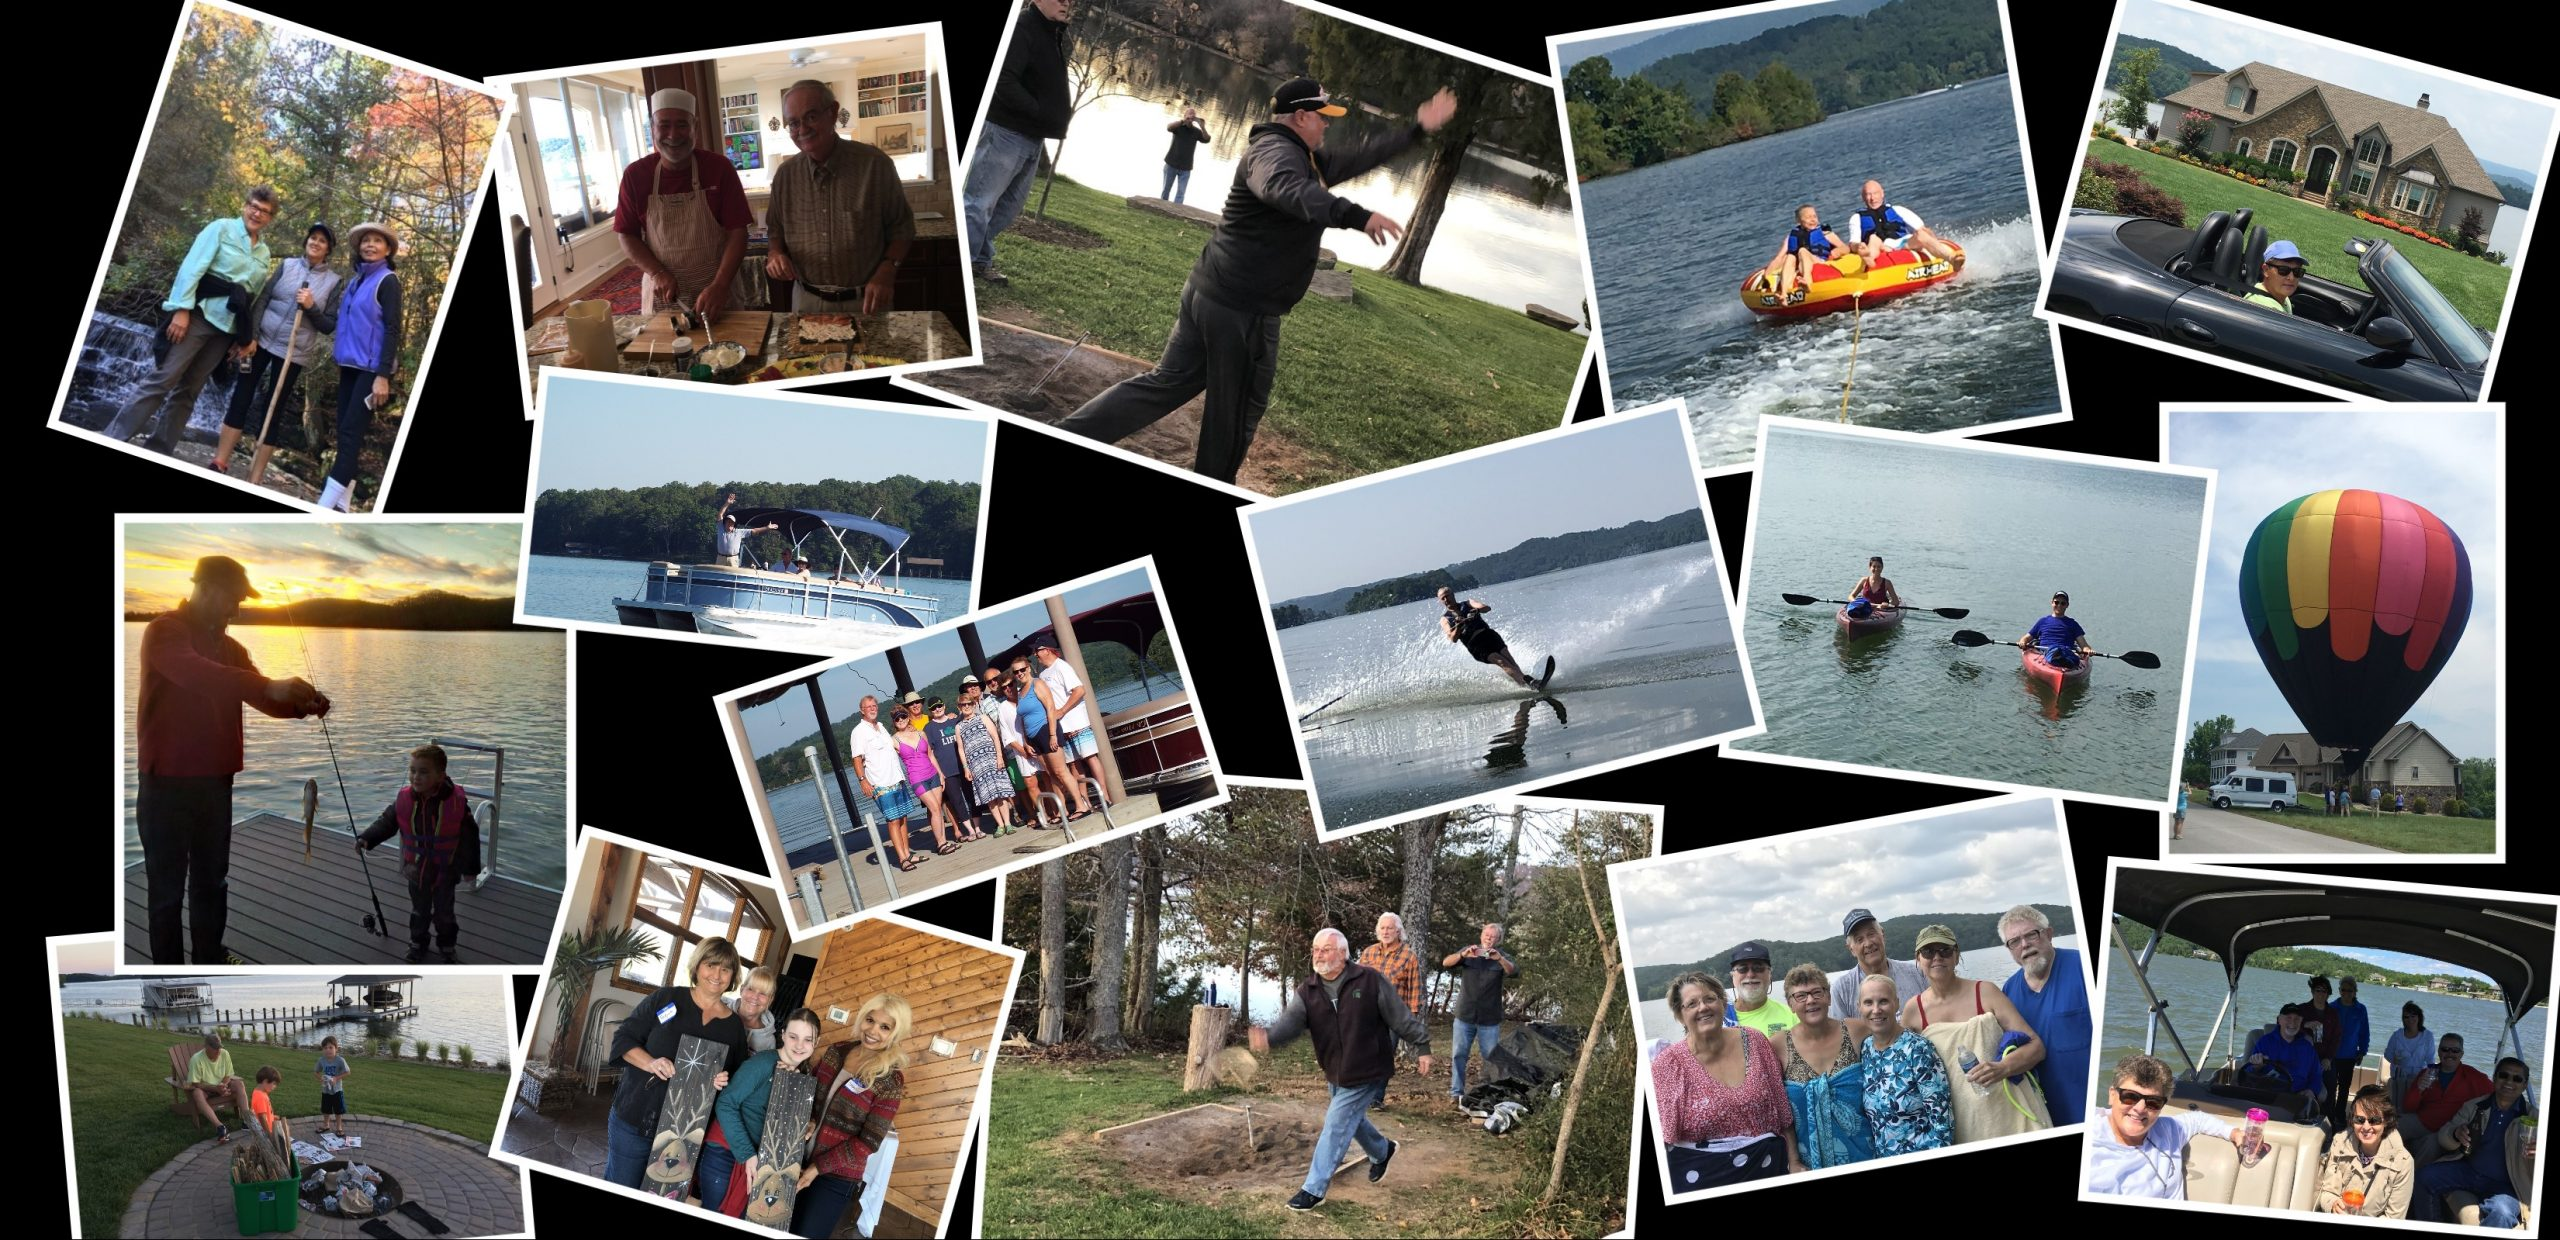 Activities collage at Grande Vista Bay